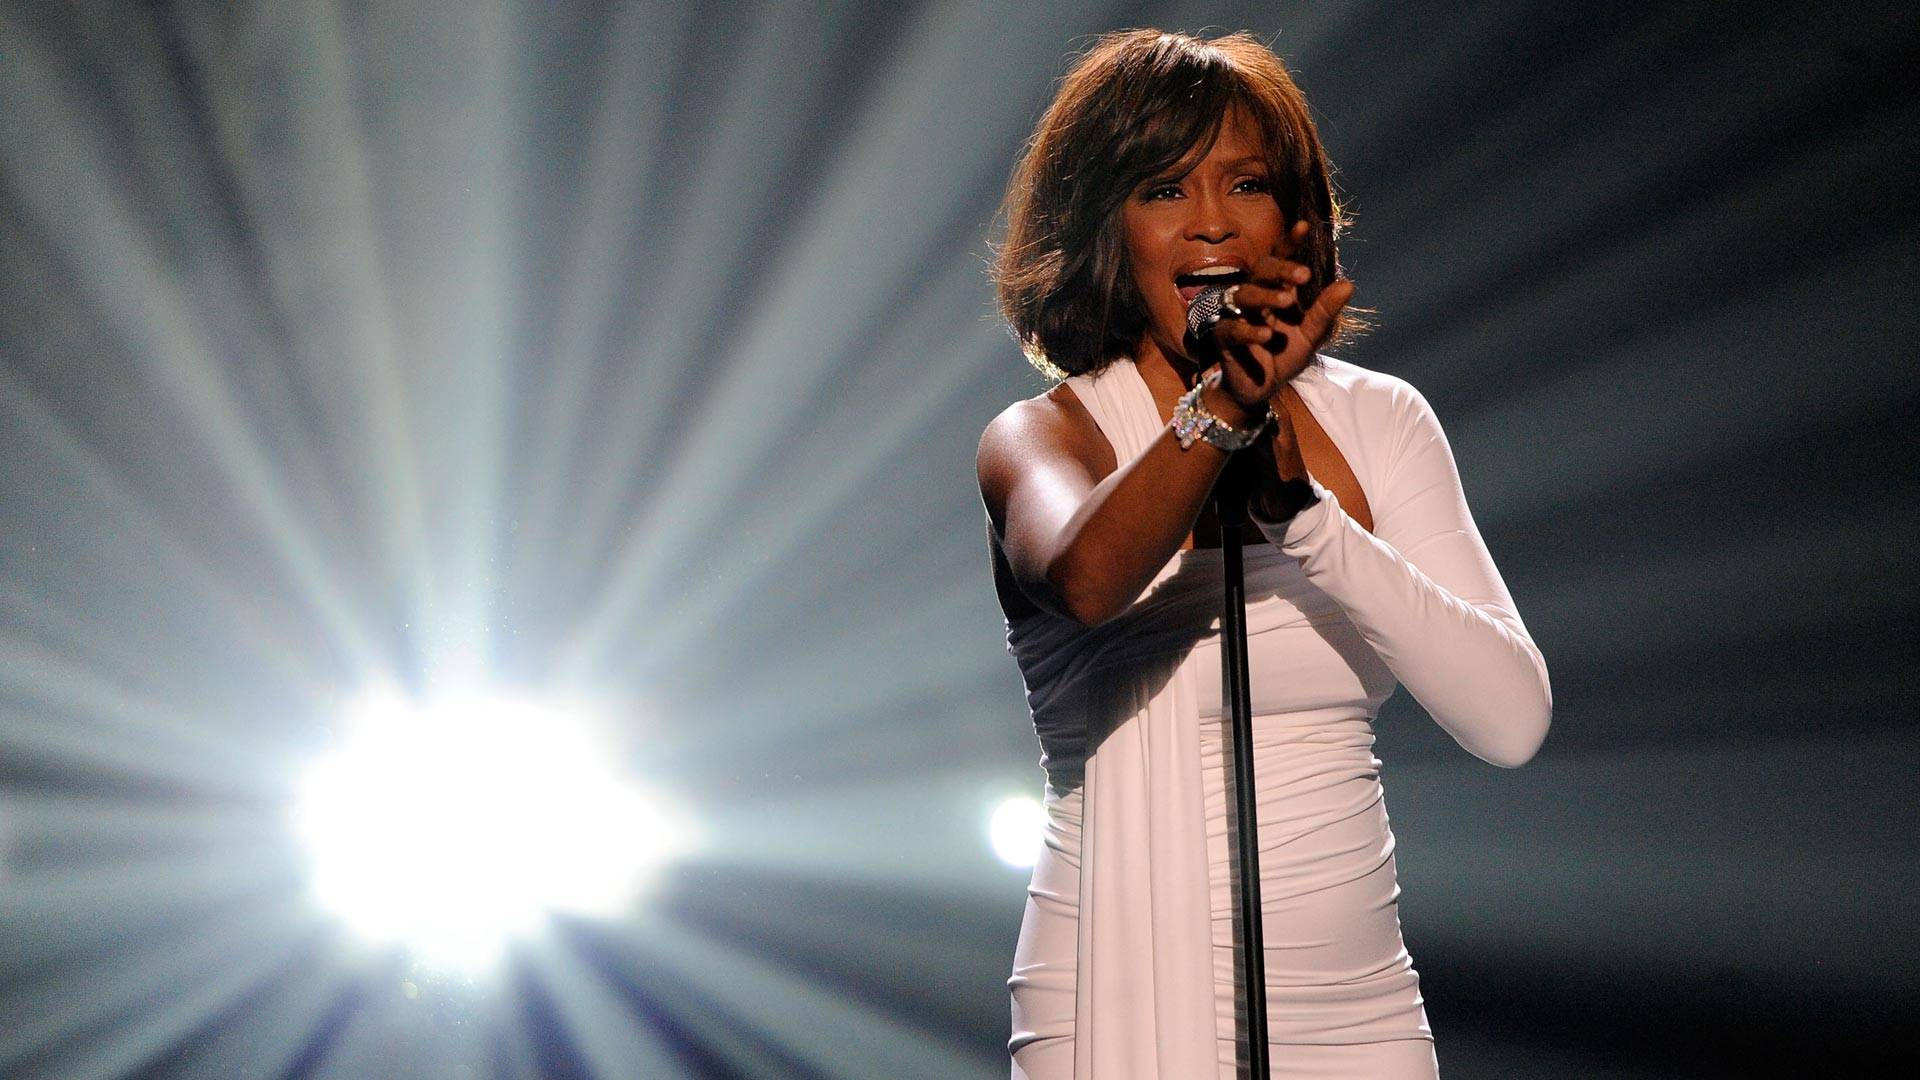 Whitney Houston onstage at the 2009 American Music Awards at the Nokia Theatre on November 22, 2009 in Los Angeles.  Kevork Djansezian/Getty Images